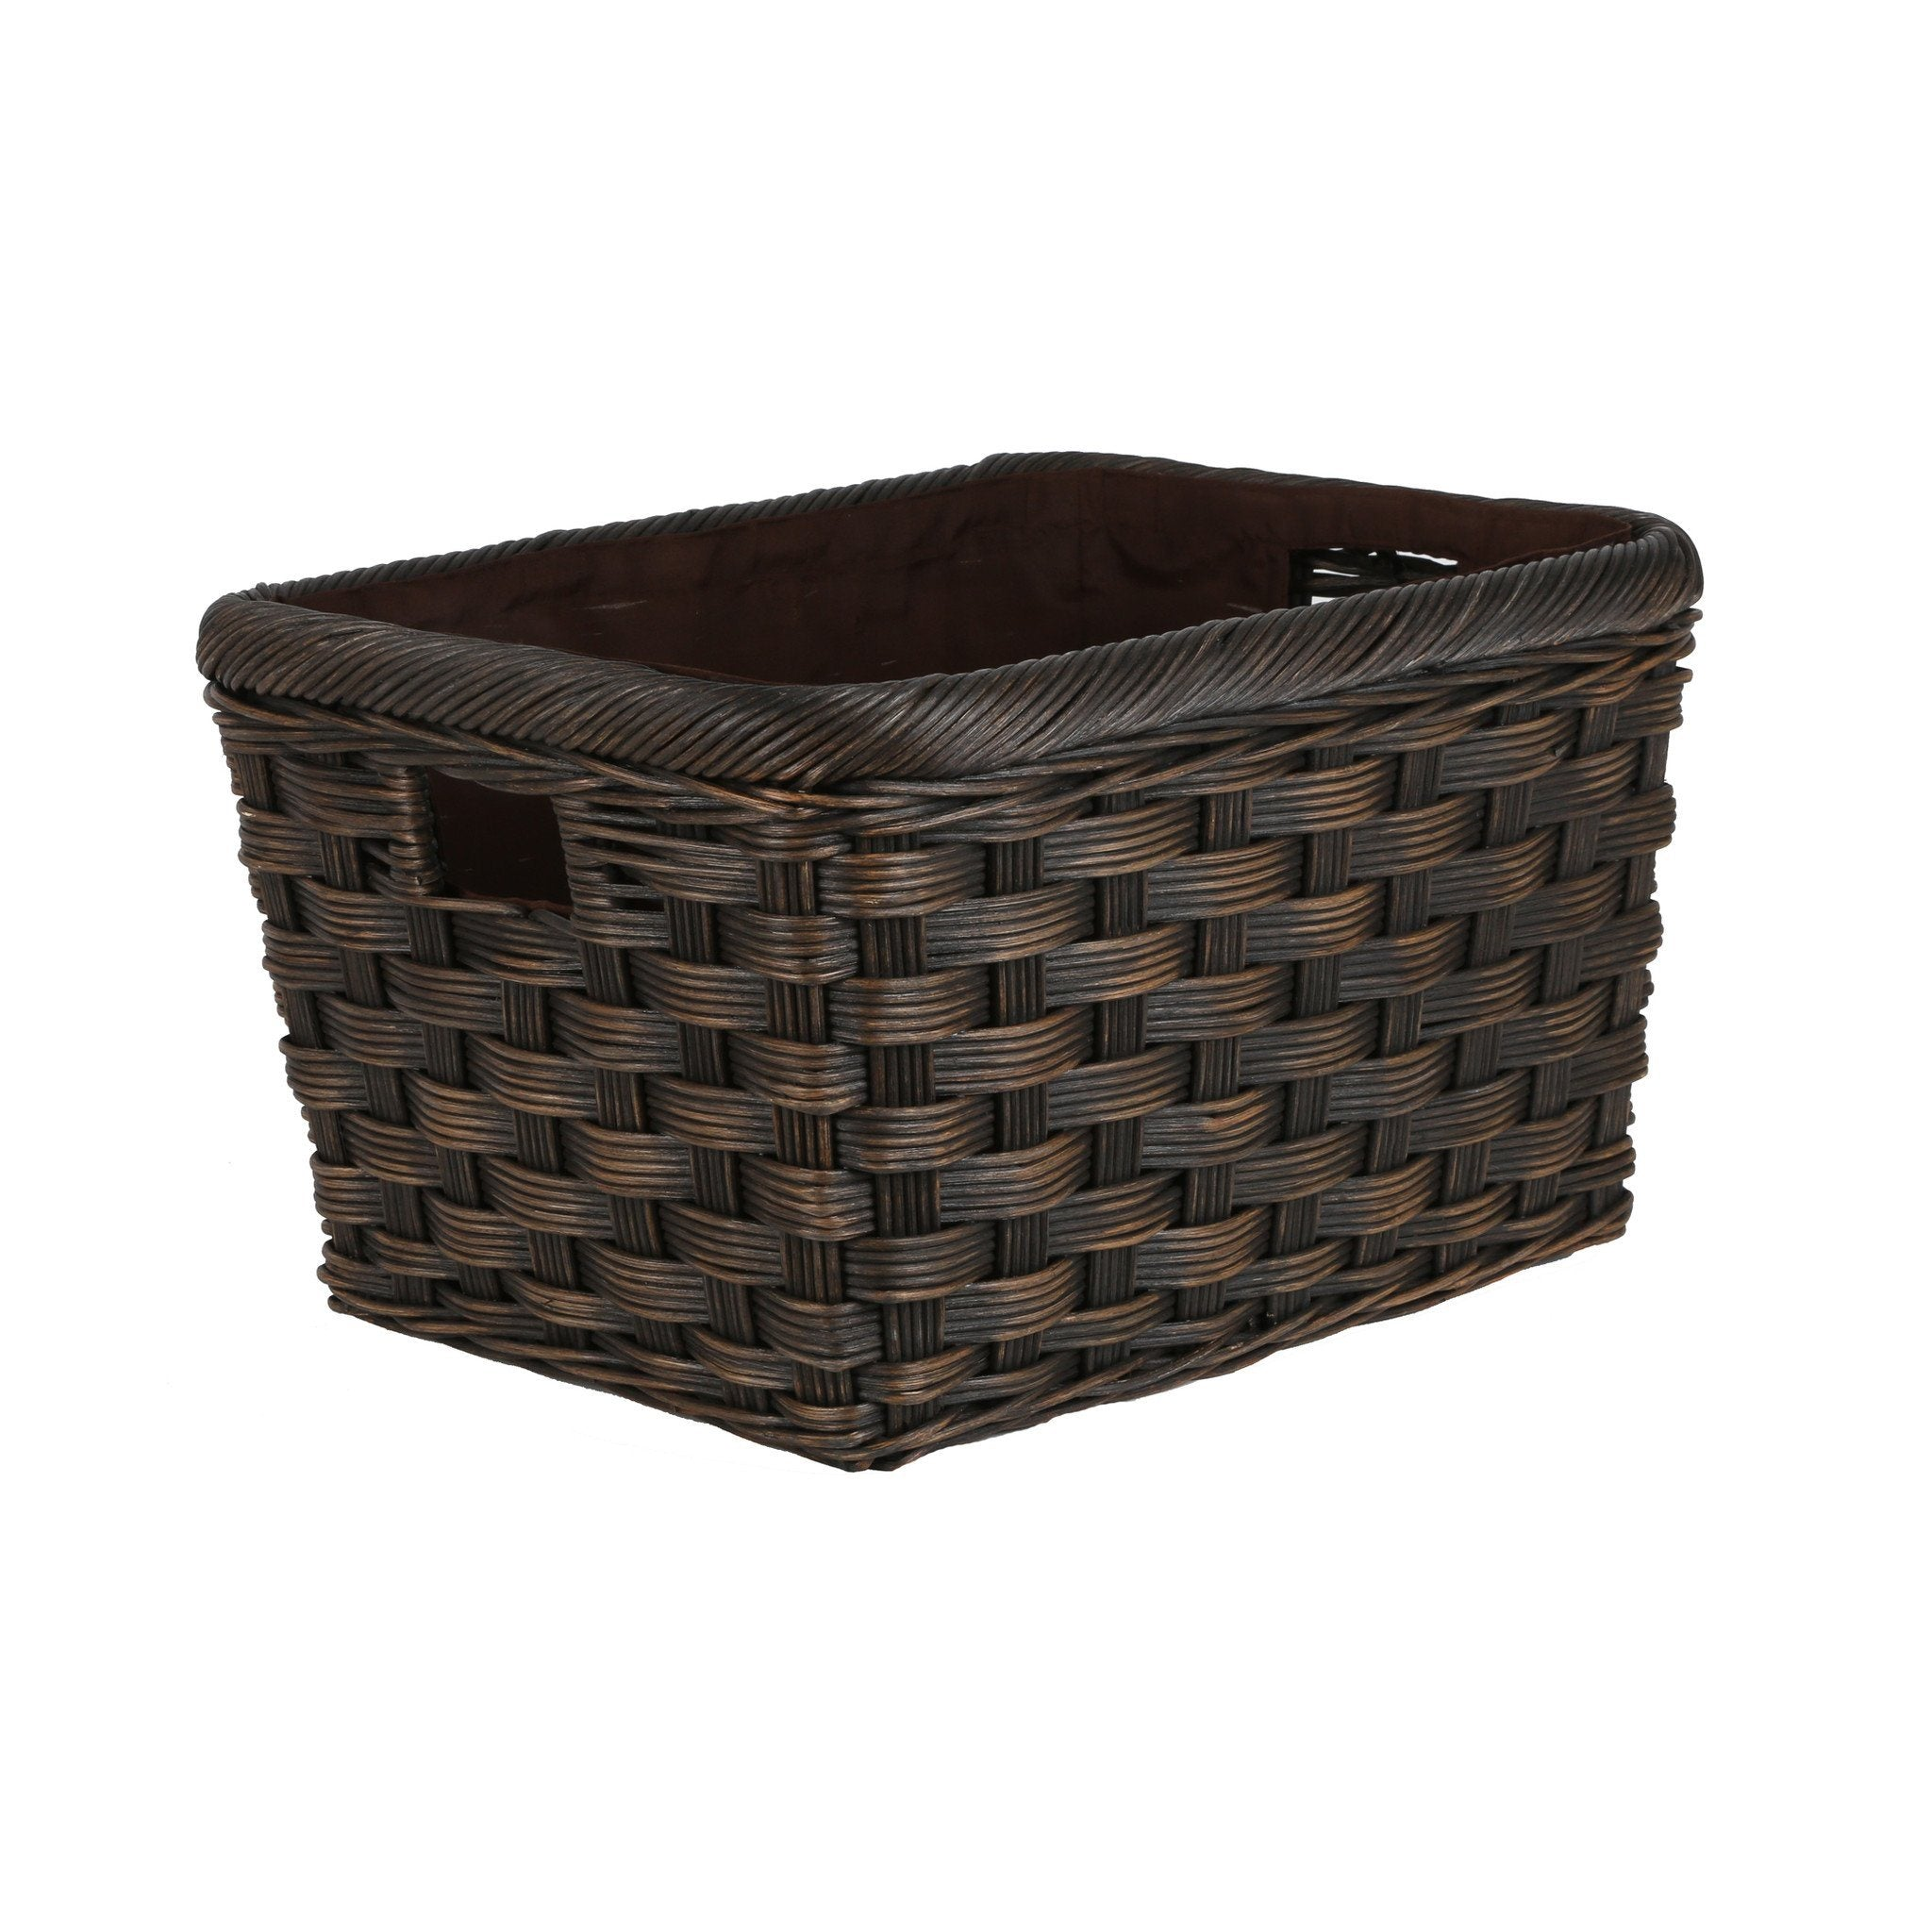 ... Jumbo Wicker Storage Basket In Antique Walnut Brown Size M From The  Basket Lady ...